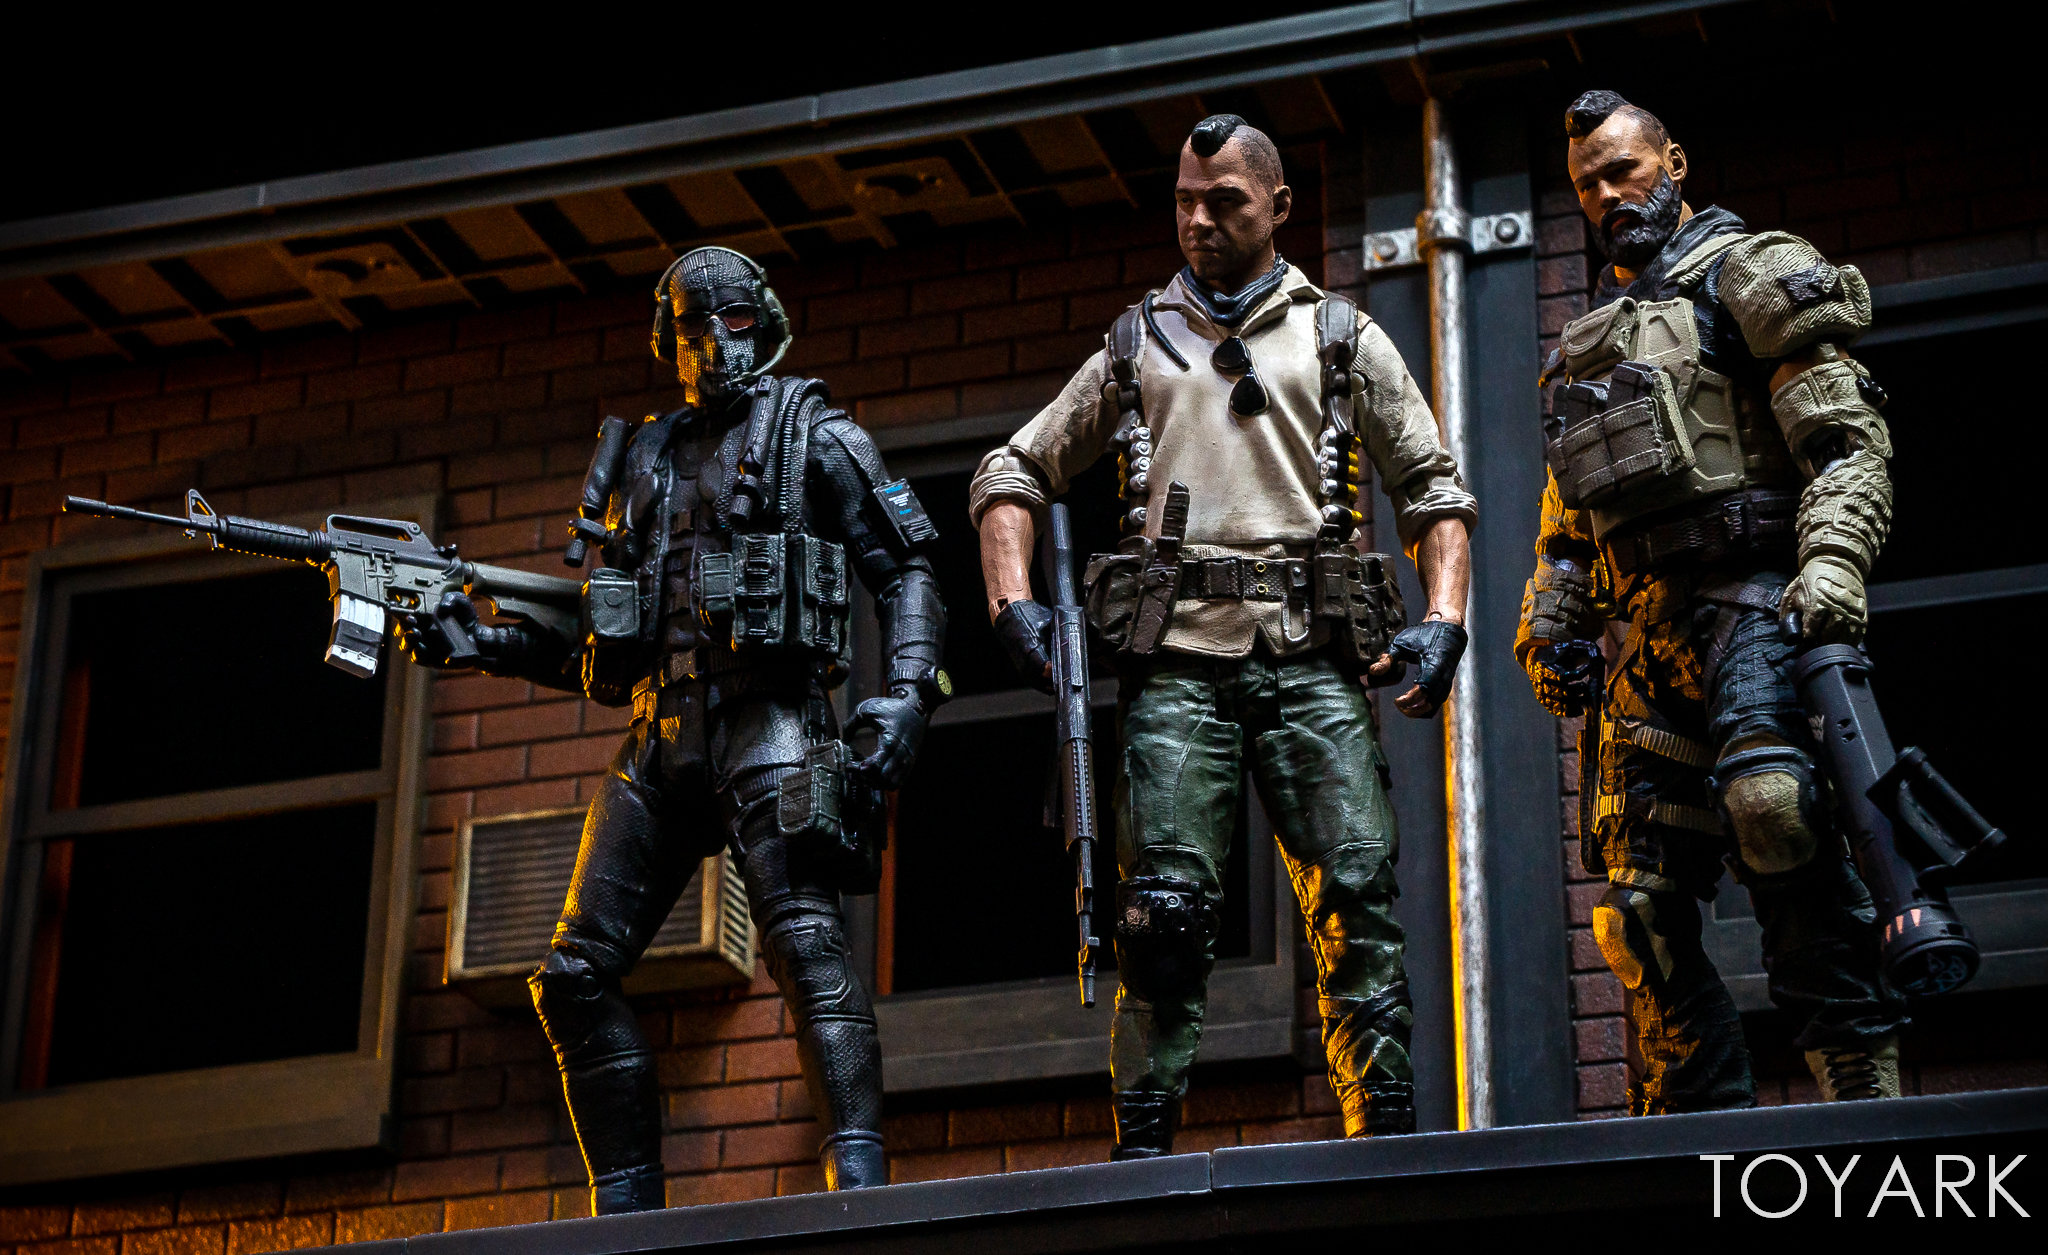 https://news.toyark.com/wp-content/uploads/sites/4/2019/01/Call-of-Duty-Wave-1-McFarlane-035.jpg